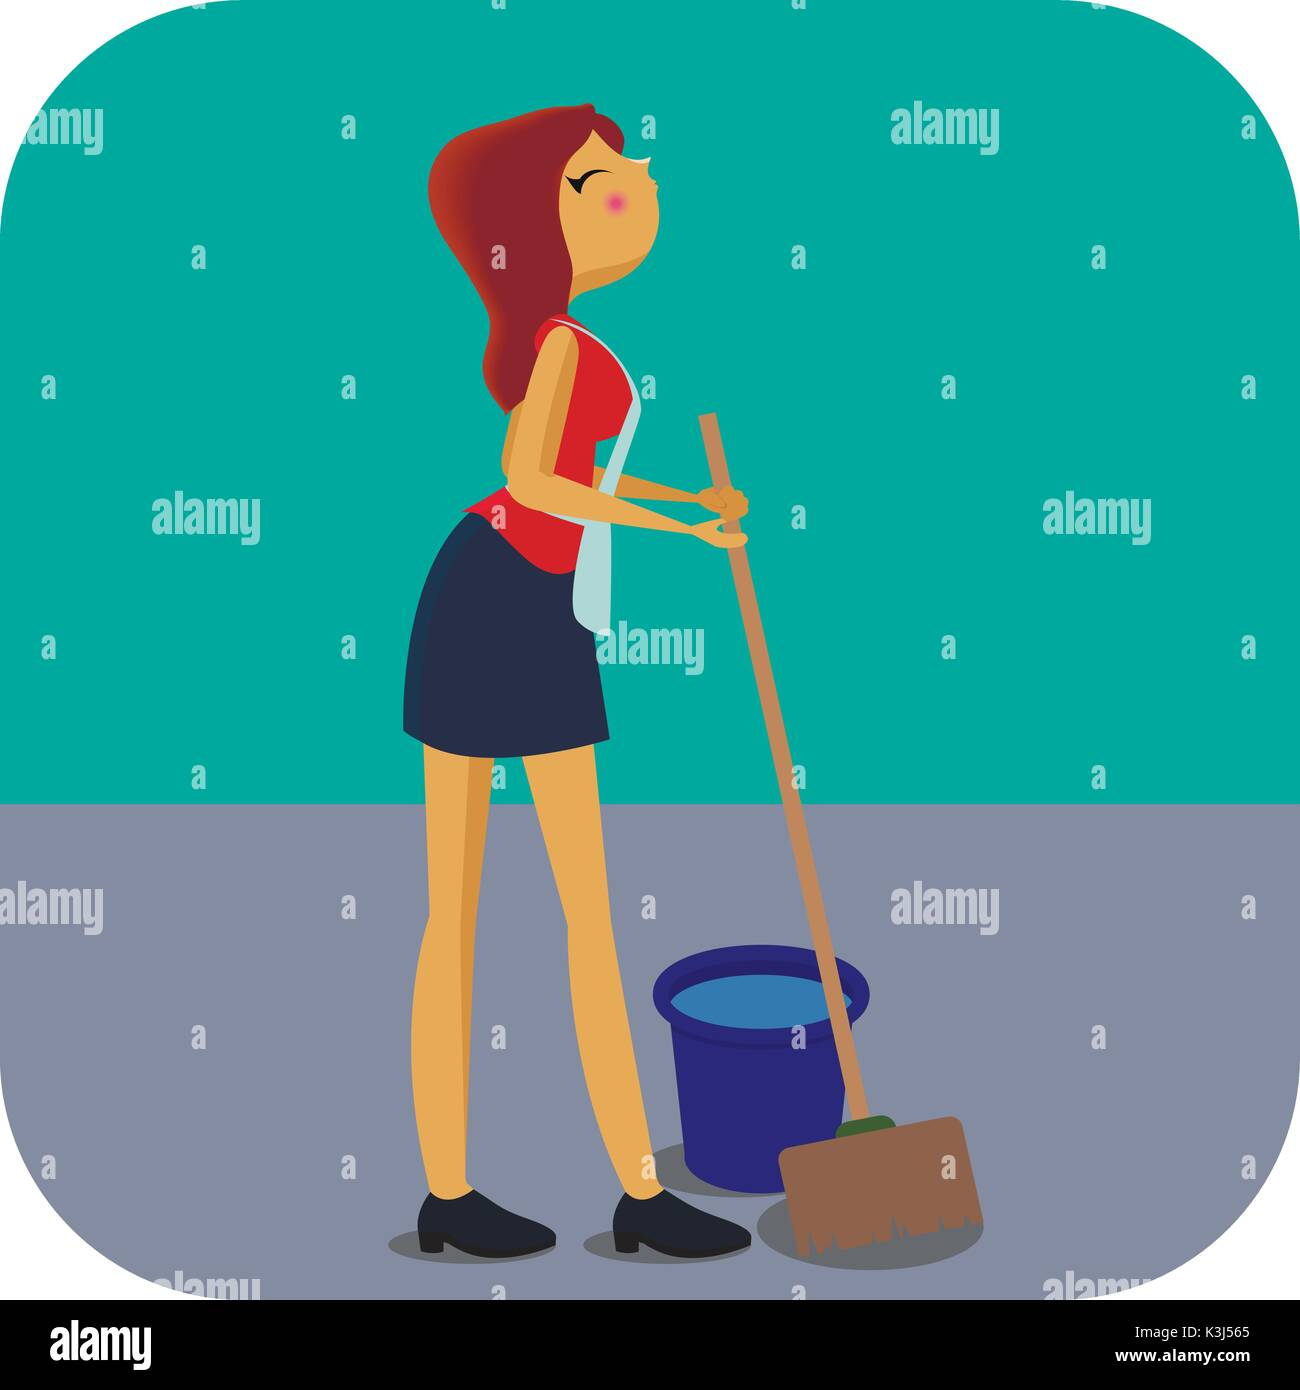 Cleaning Woman with Mop and Bucket - Stock Vector